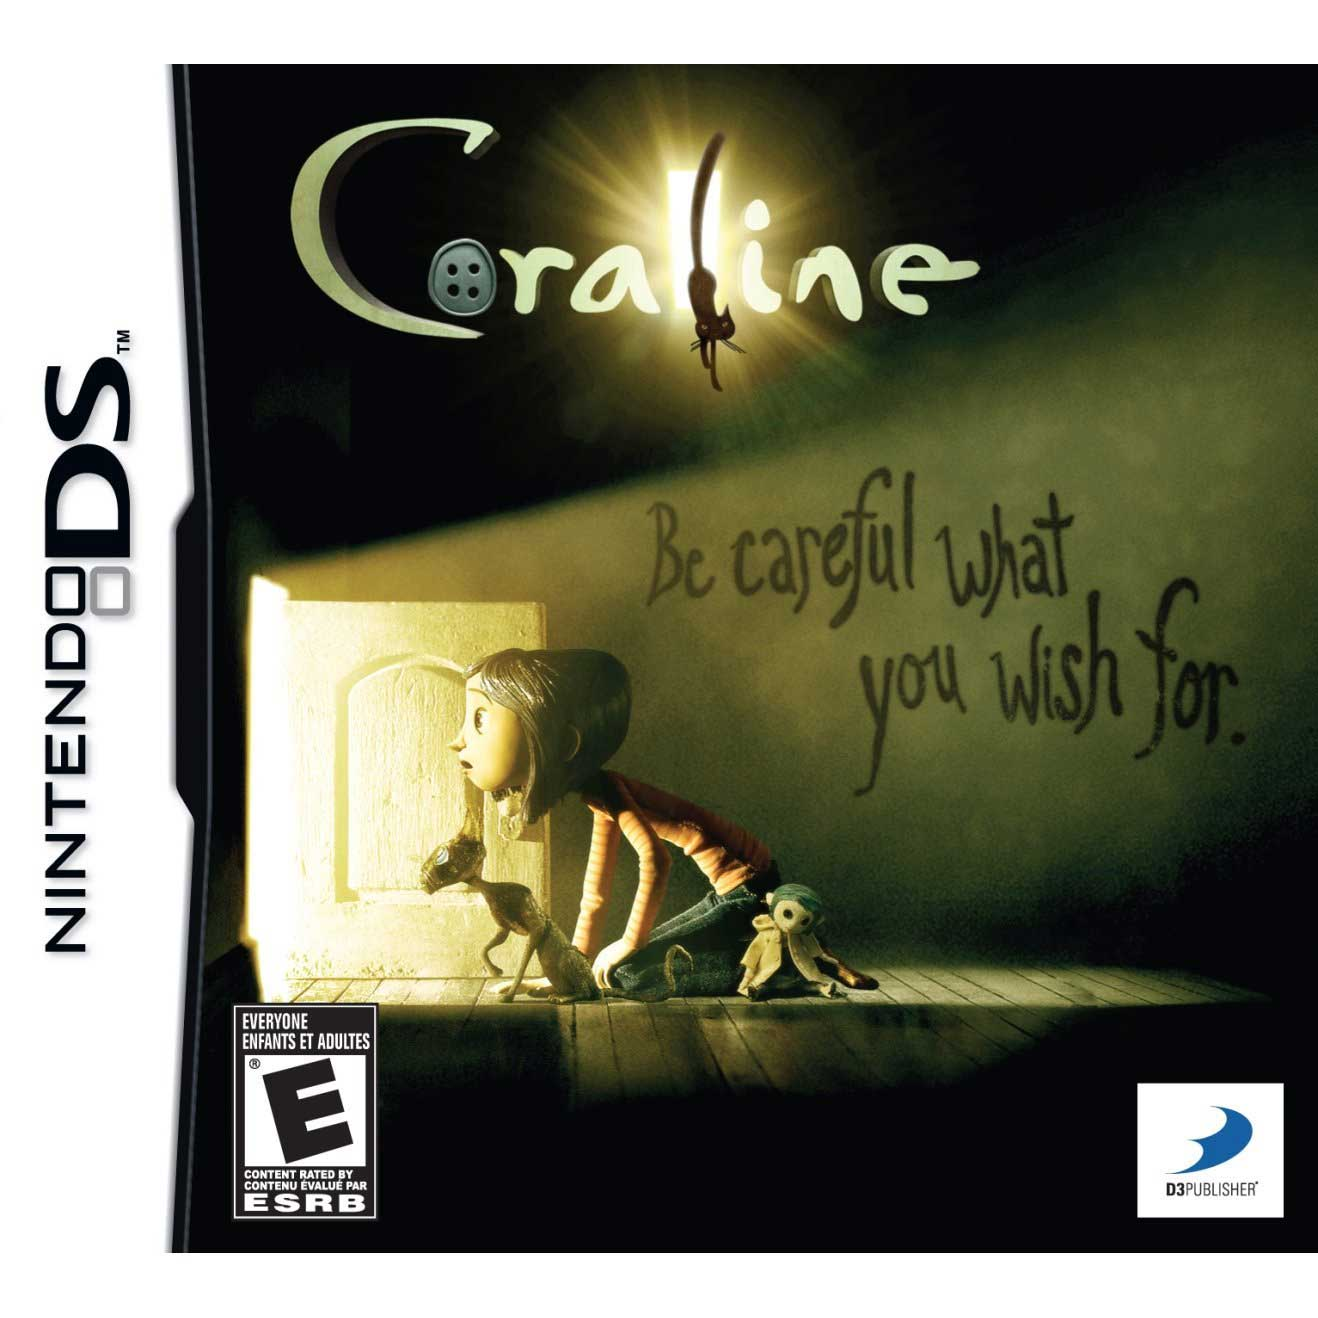 download coraline full movie free